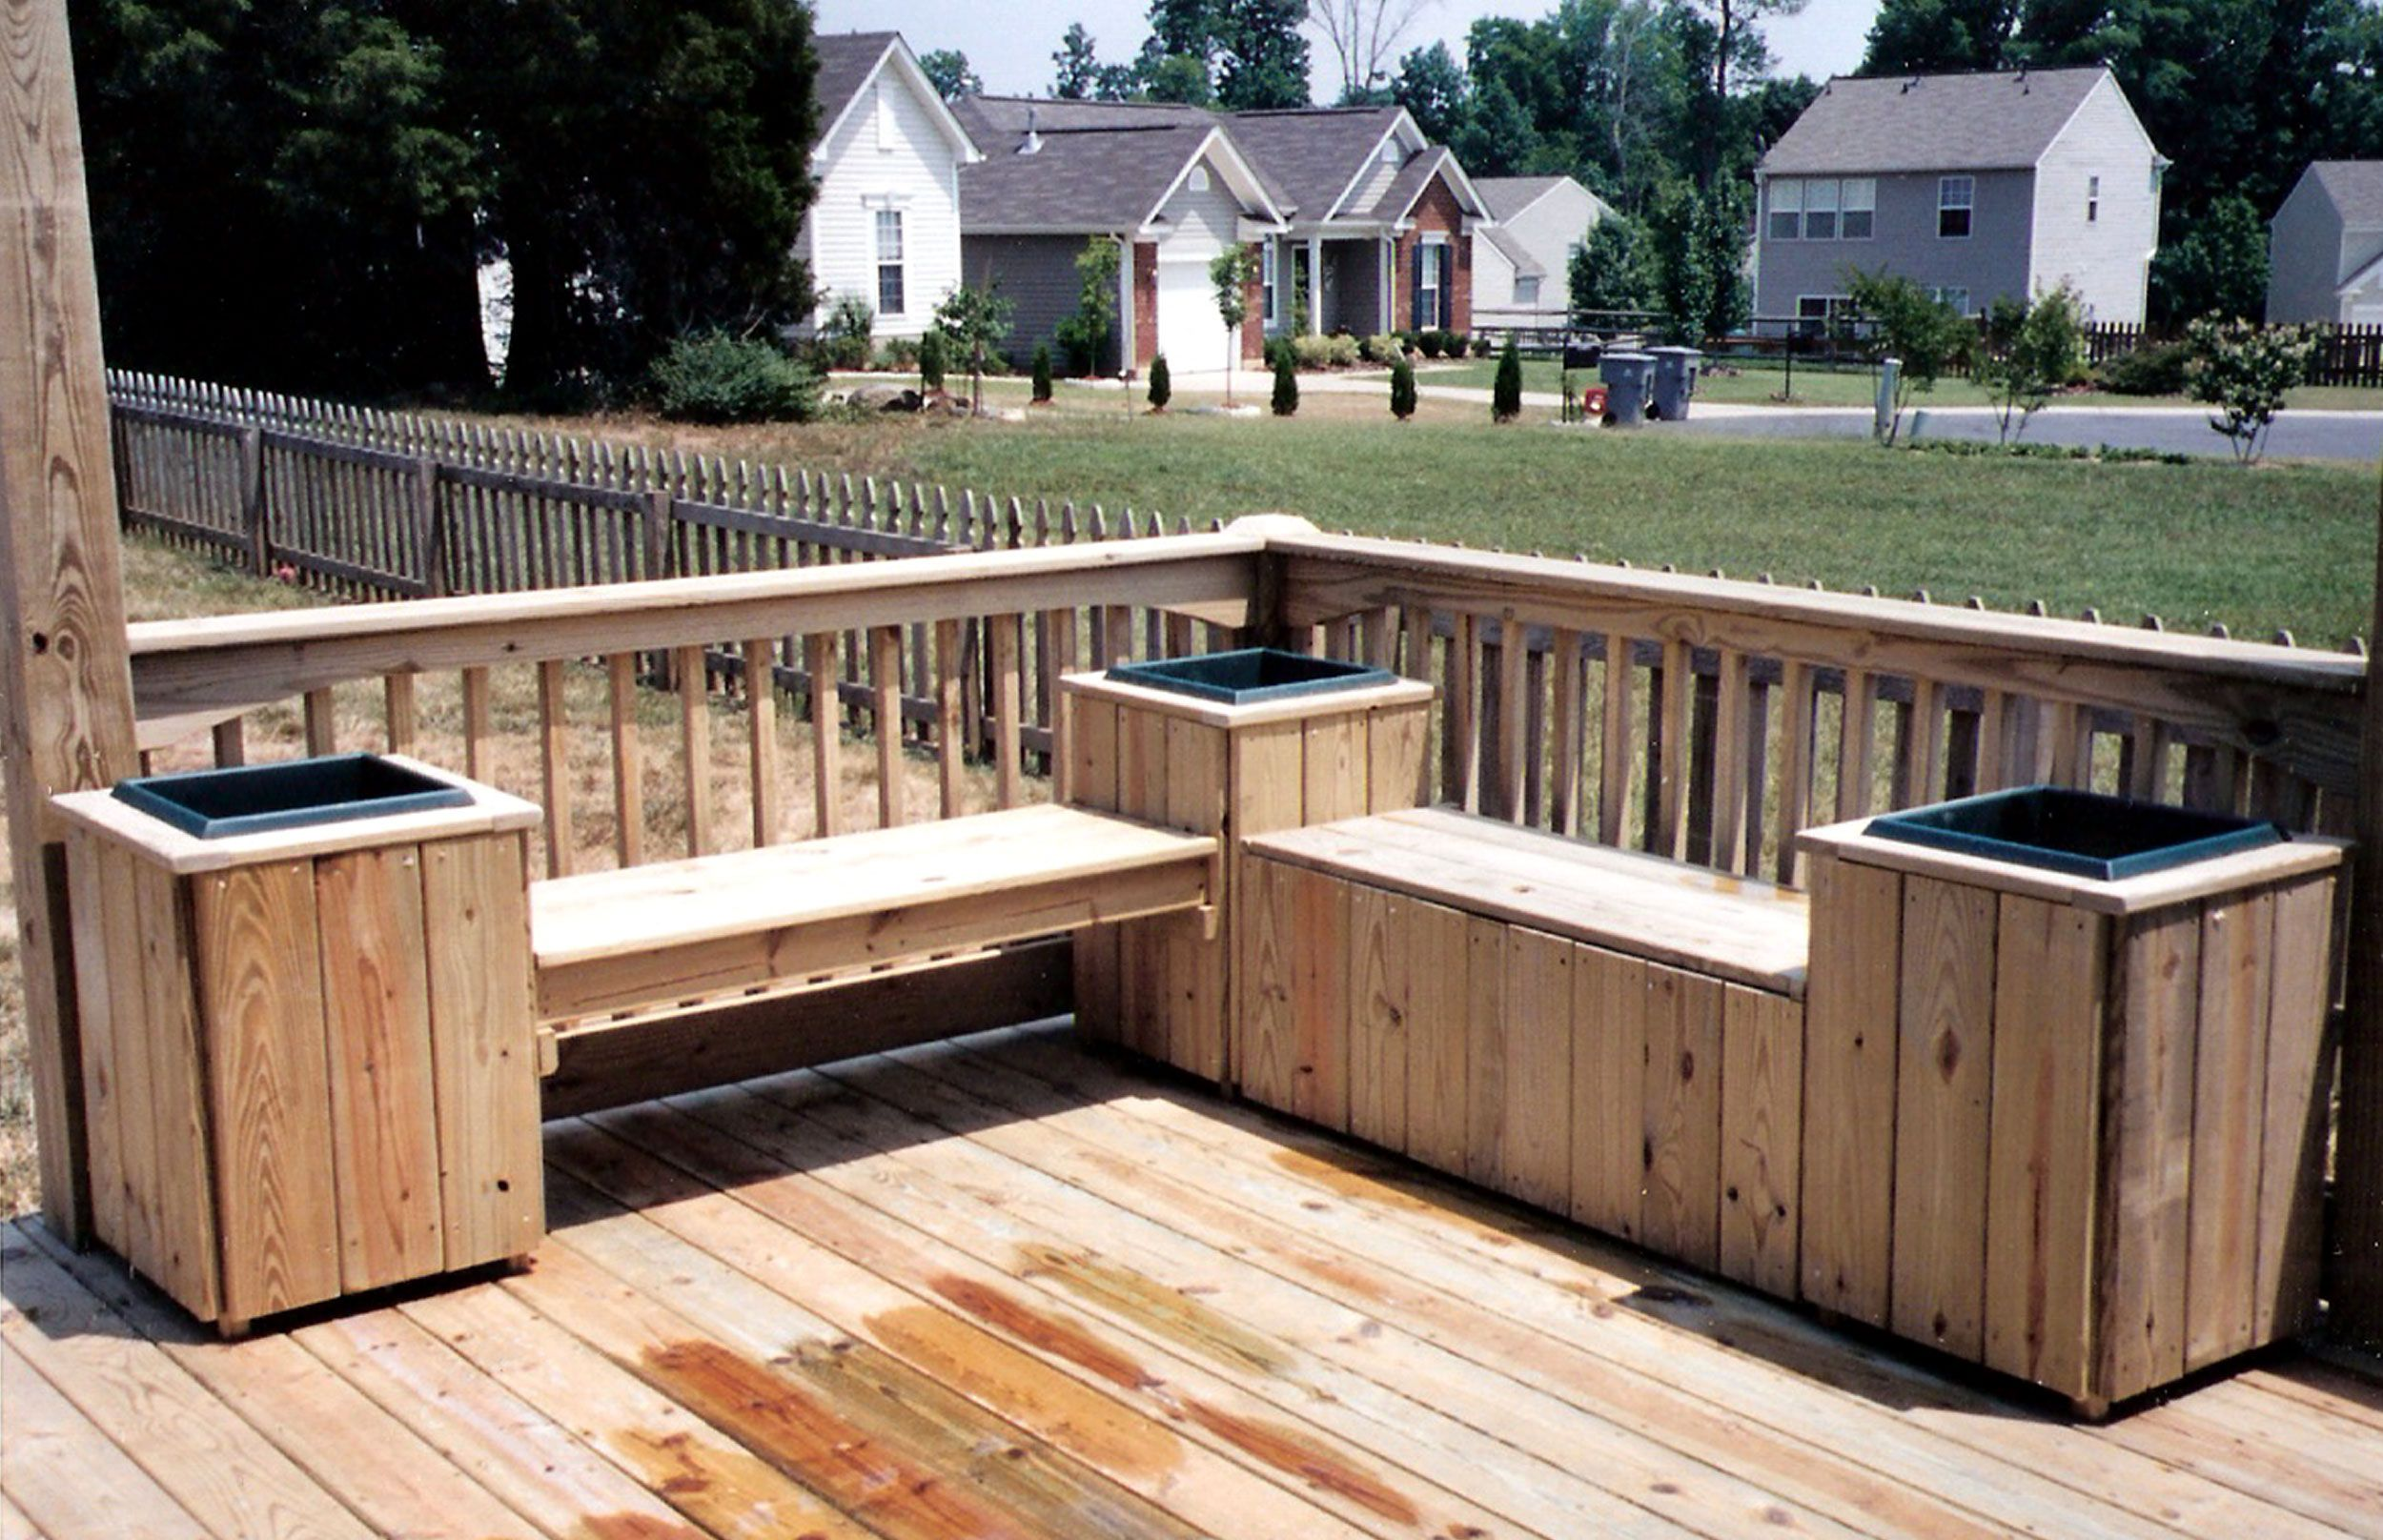 Deck ideas pictures deck with metal decorative rail pressure deck ideas pictures deck with metal decorative rail pressure treated deck evergrain baanklon Images